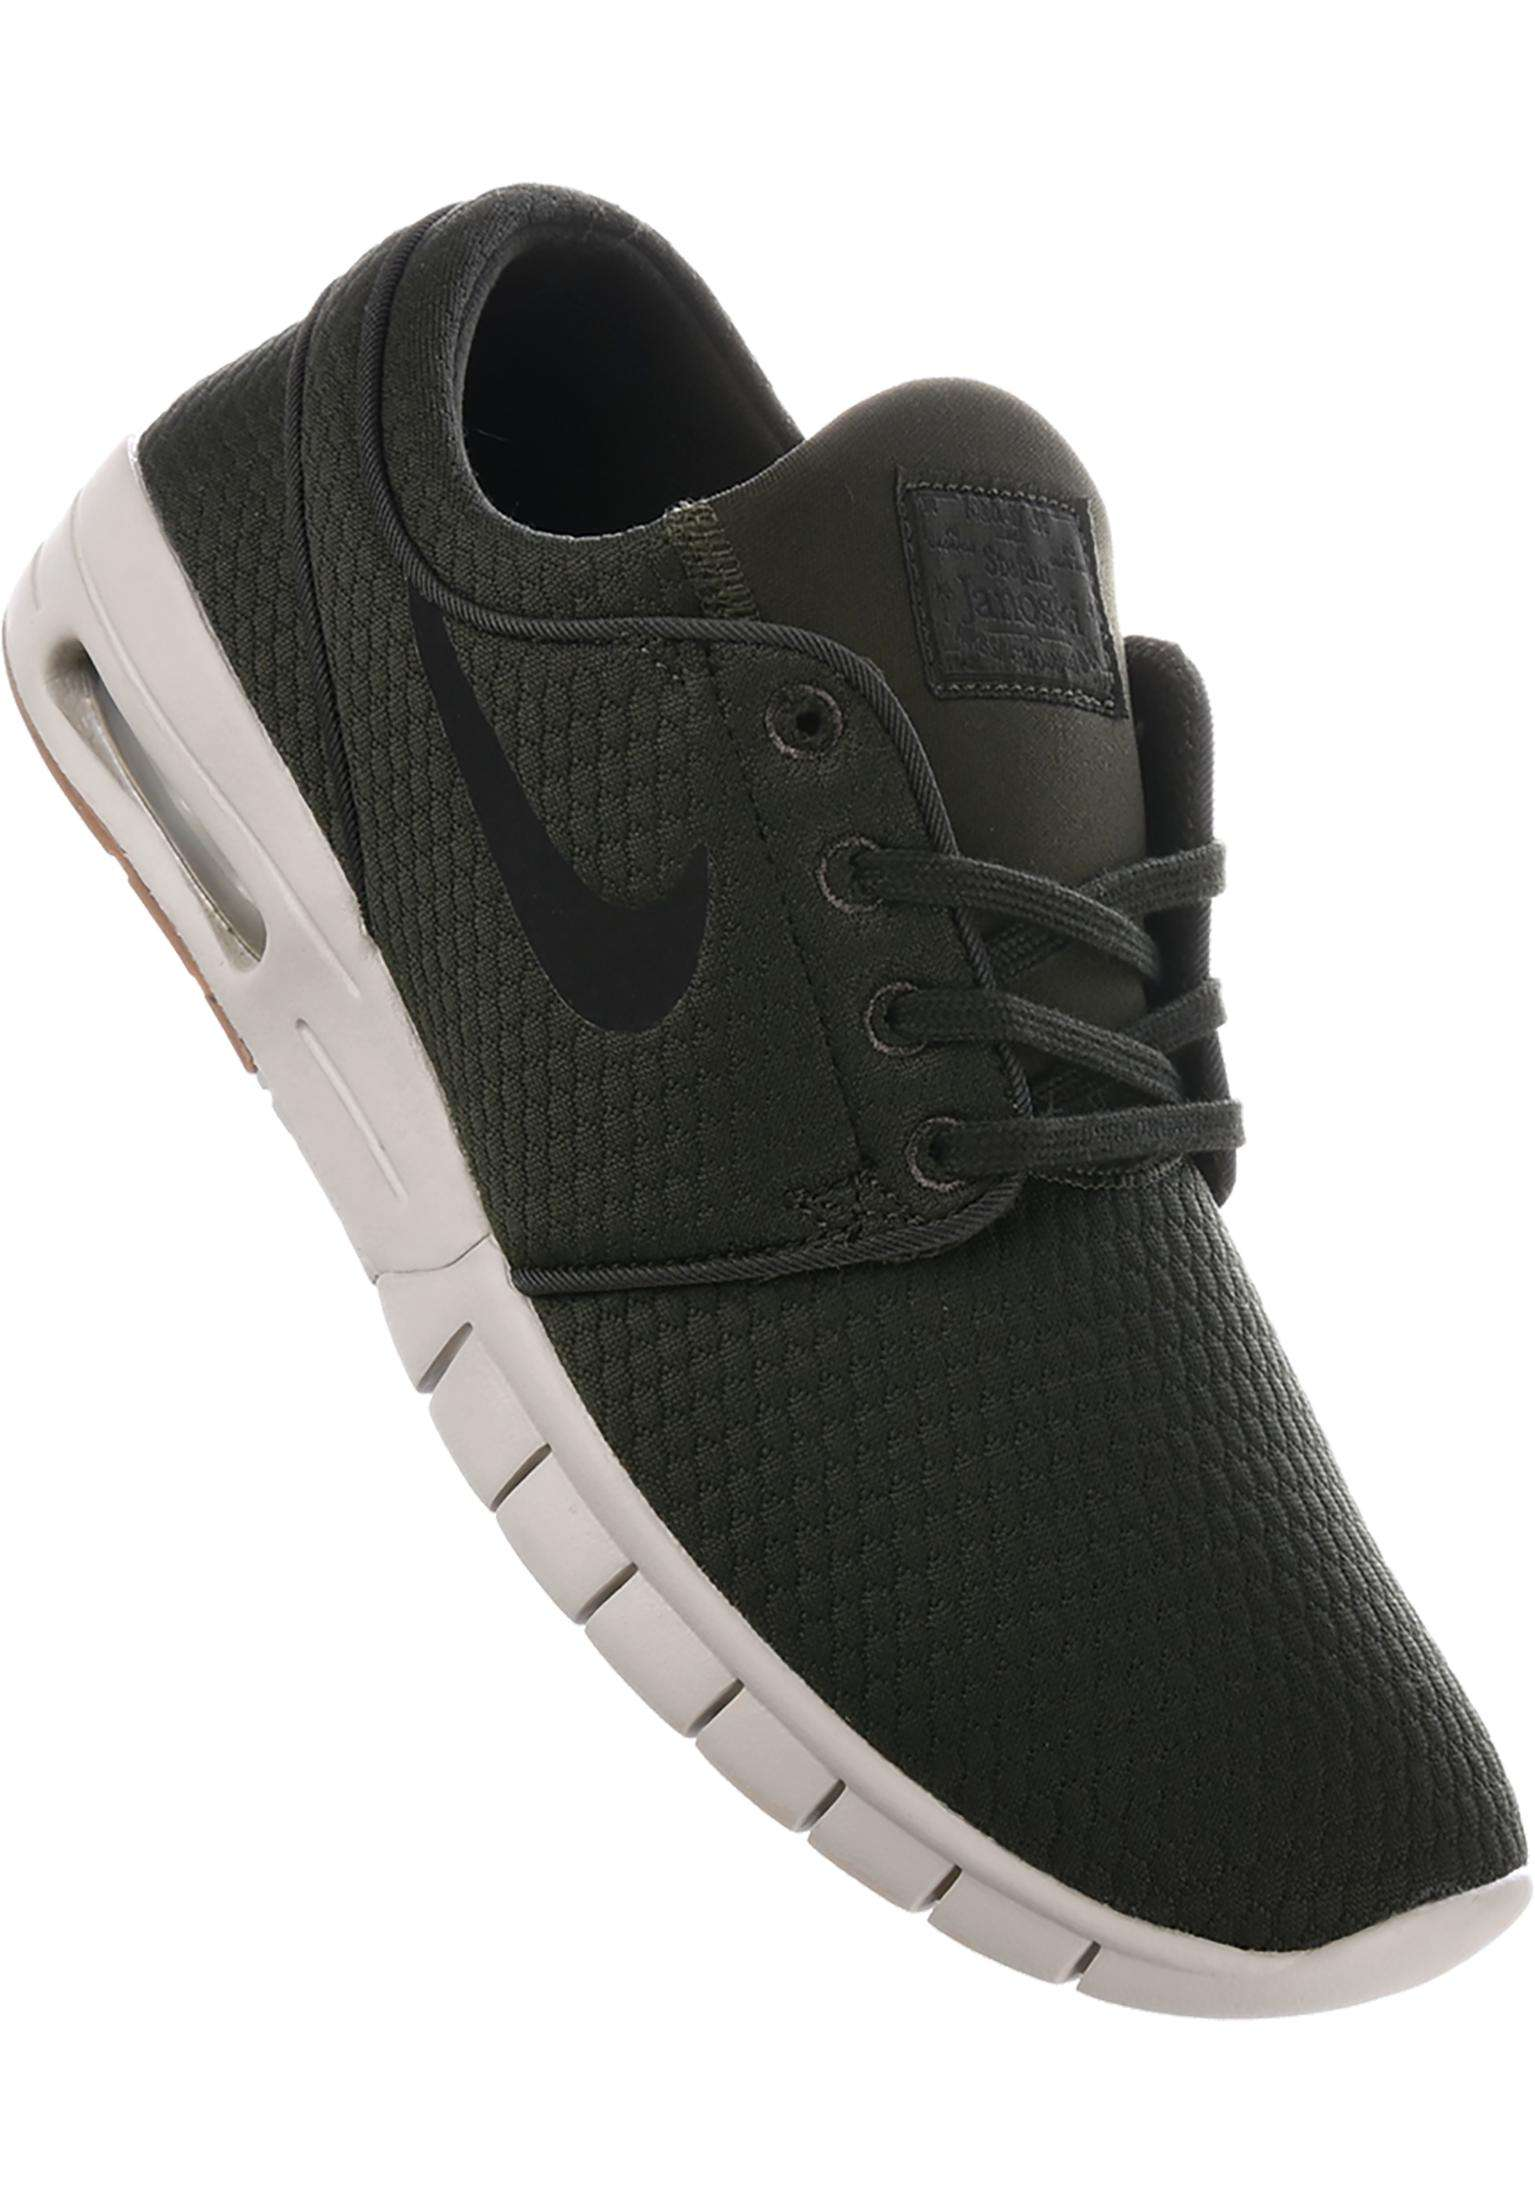 Stefan Janoski Max Nike SB All Shoes in sequoia-black-gum for Men ... c1a3308b7